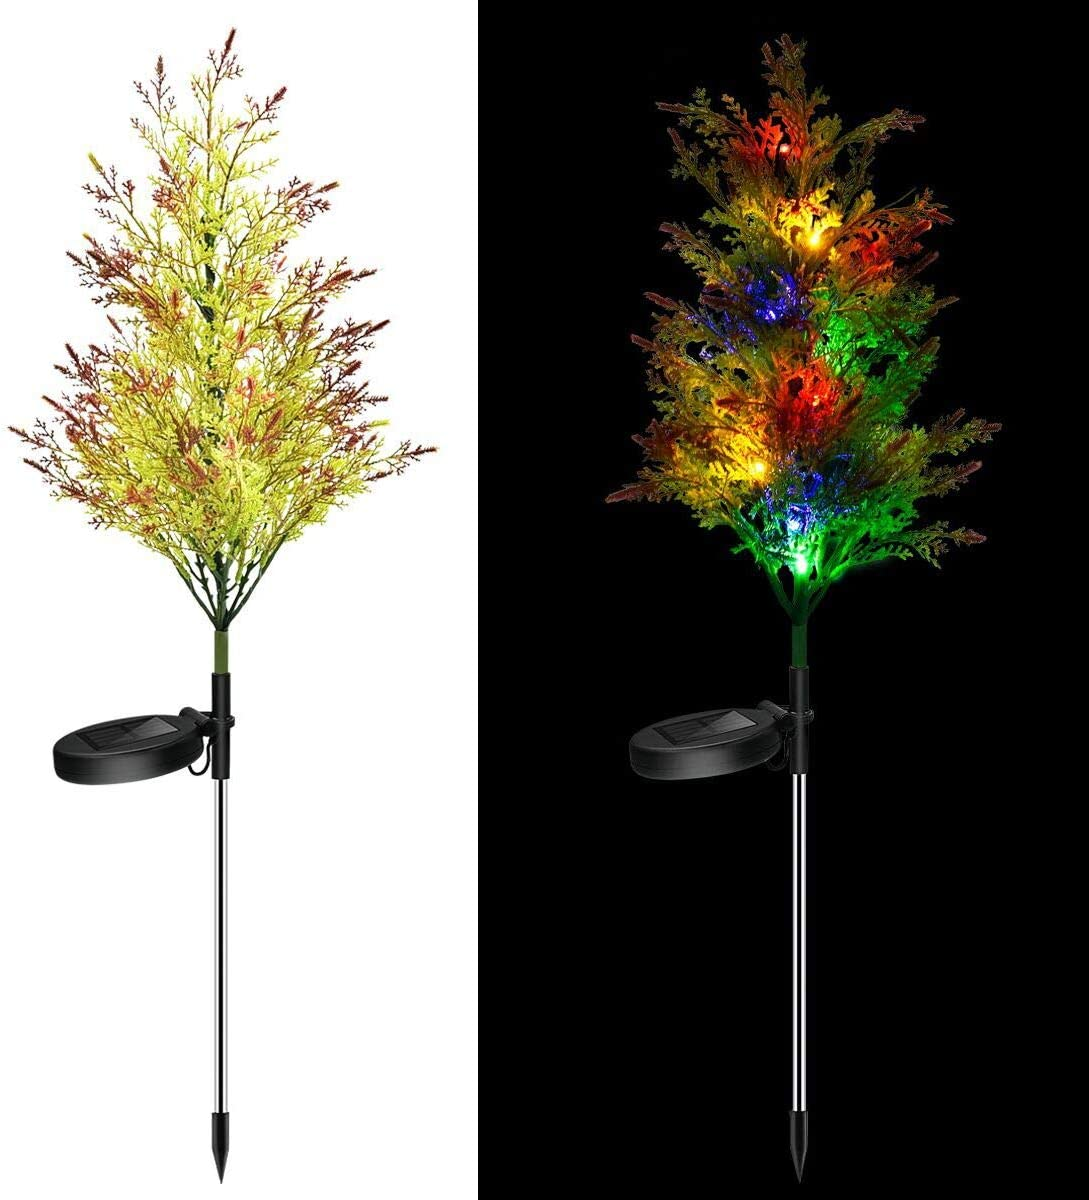 Accinouter Solar Lights Outdoor Decorative Christmas Garden Stakes Decorations In-Ground Path Light, Pine Tree Decor Lights for Garden Yard Patio Backyard,2 Pack